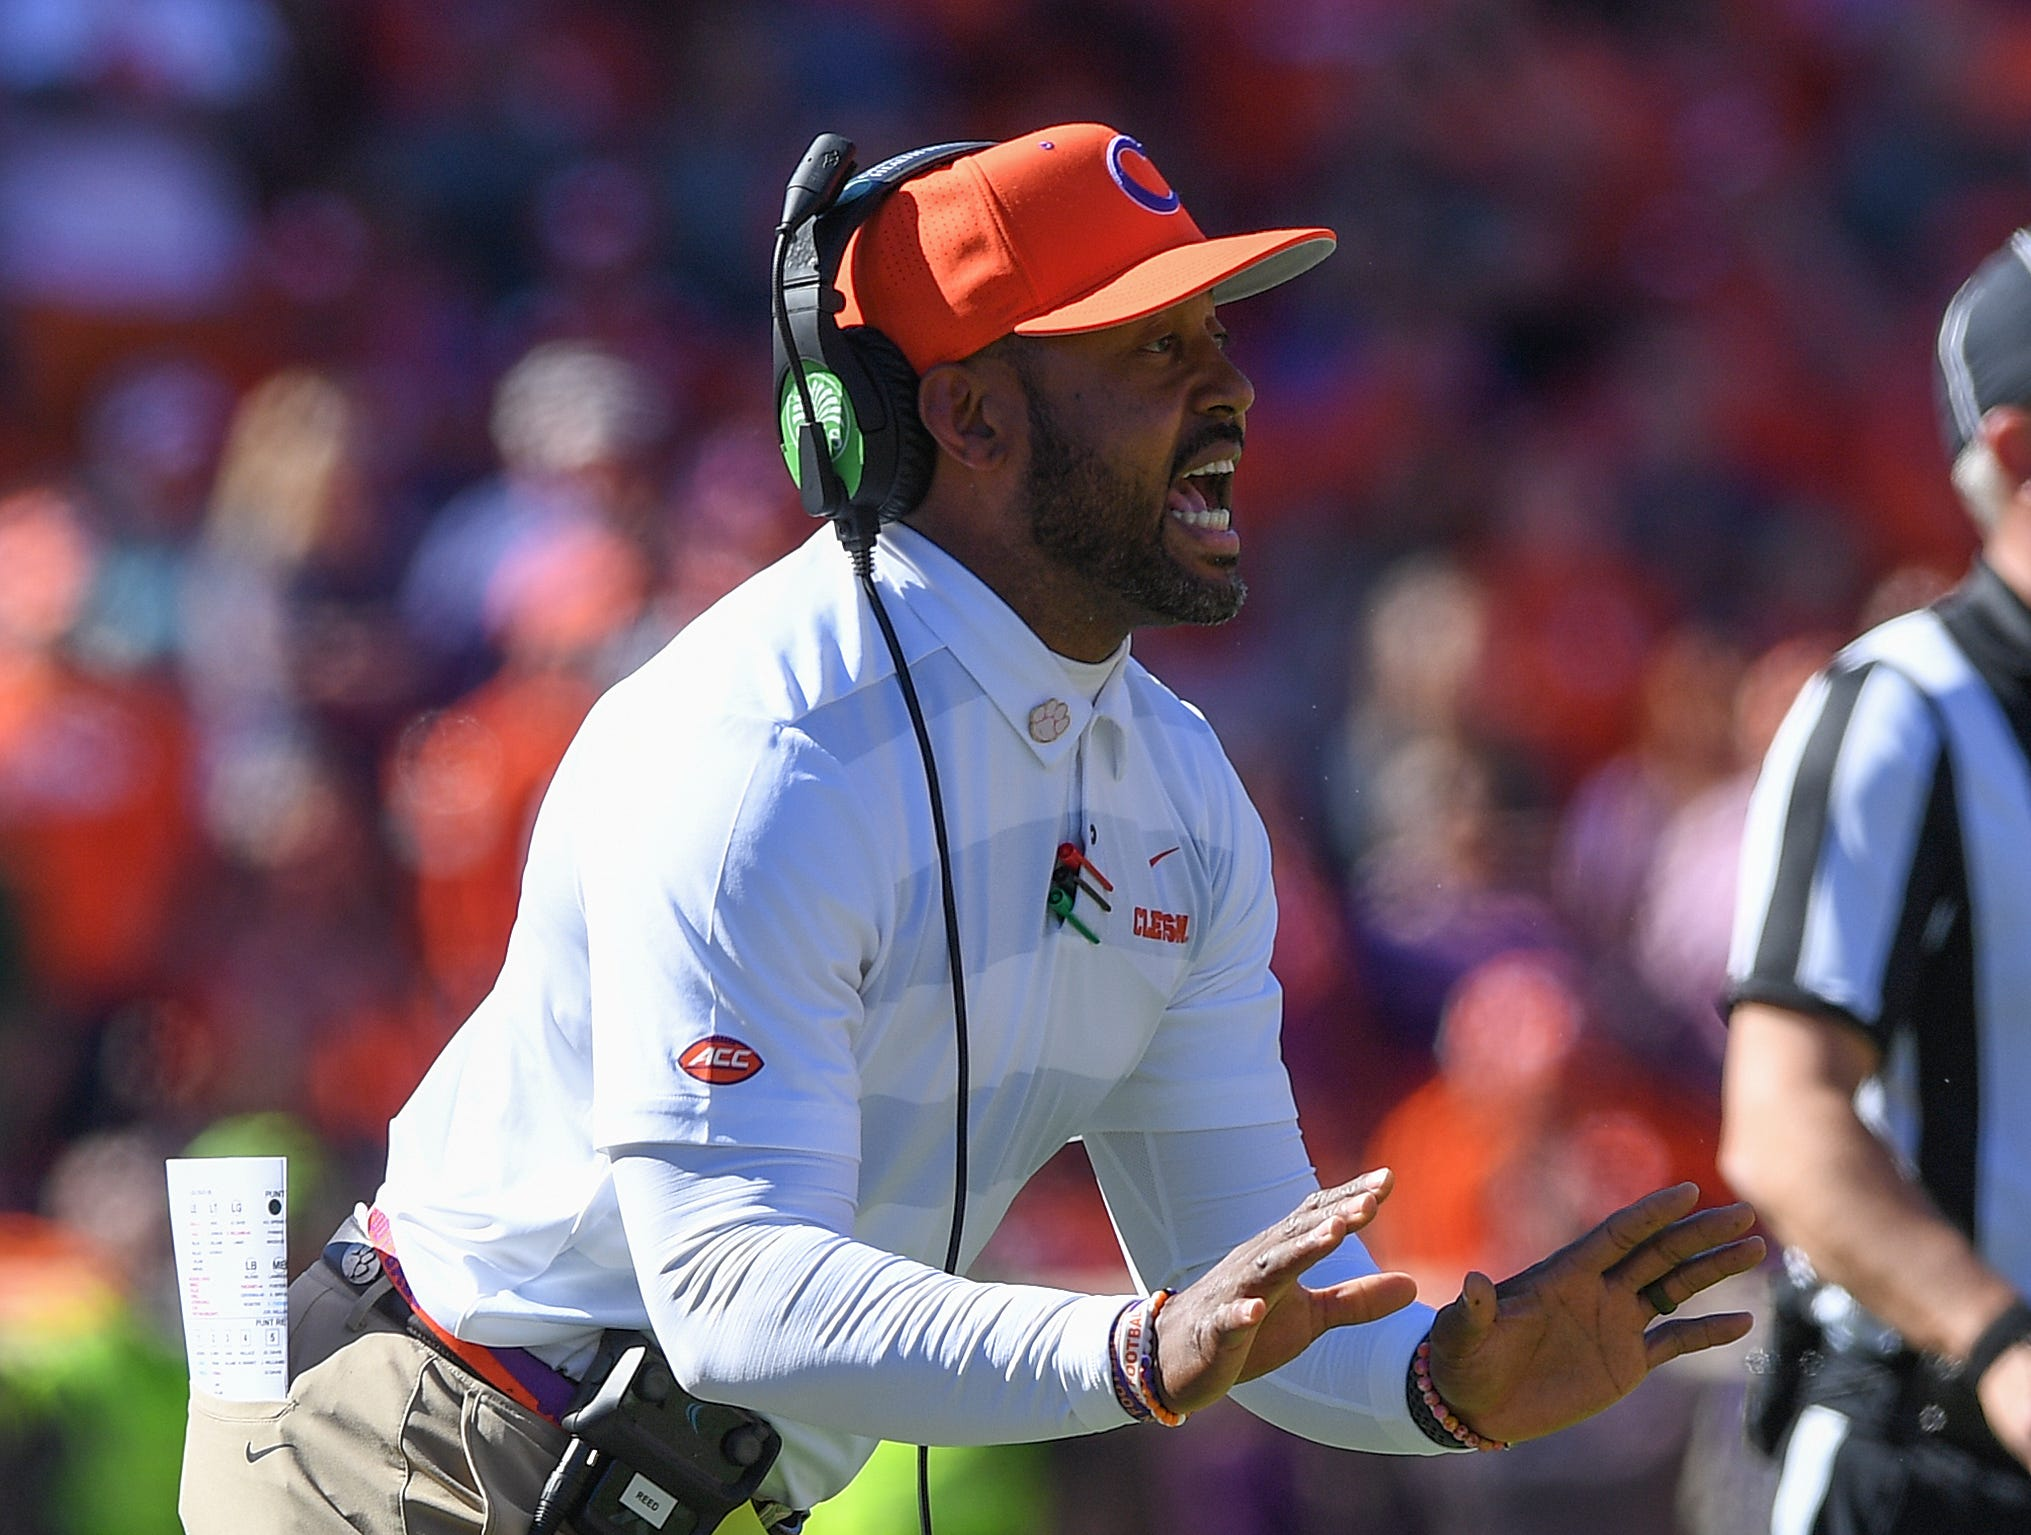 Clemson defensive backs coach Mike Reed coaches against Louisville during the 2nd quarter Saturday, November 3, 2018 at Clemson's Memorial Stadium.